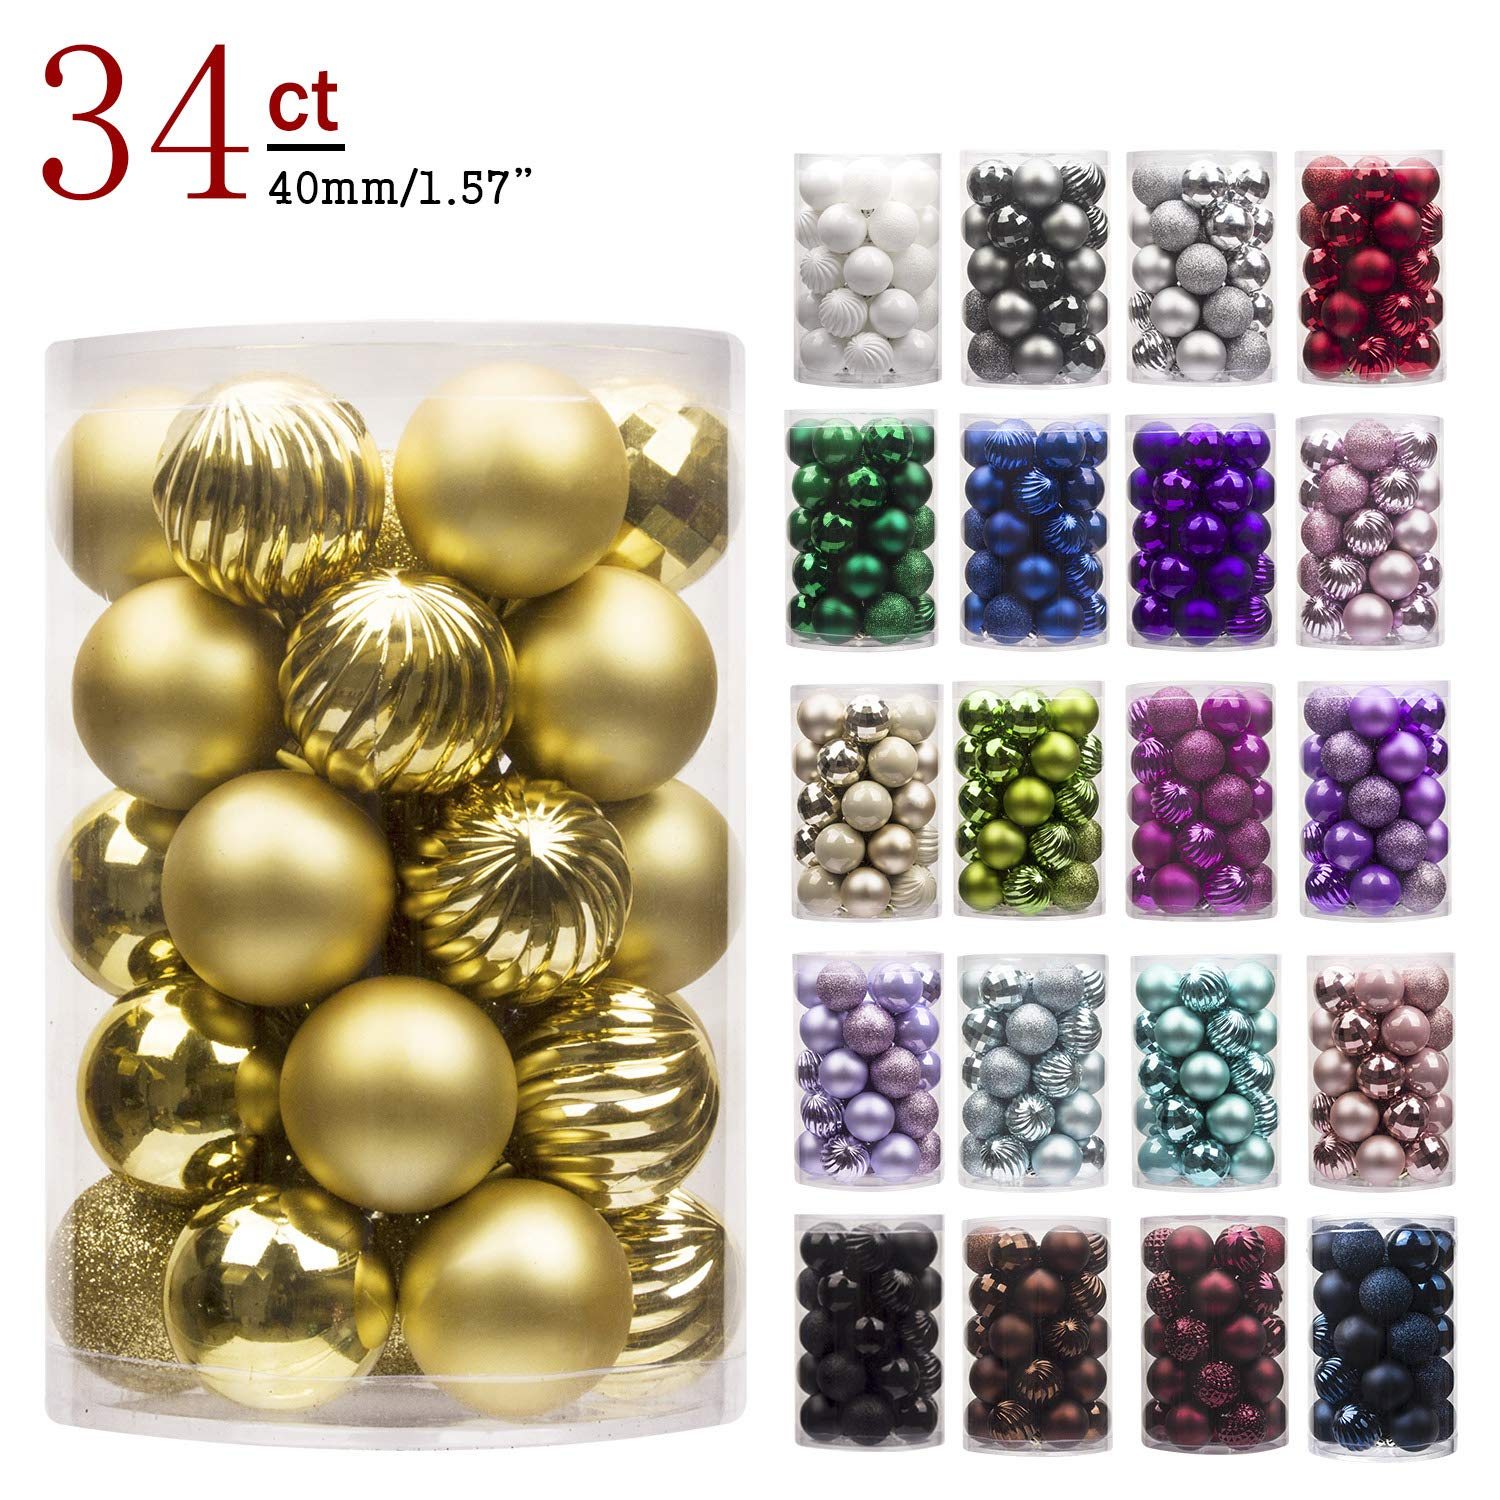 KI Store 34ct Christmas Ball Ornaments 1.57'' Small Shatterproof Christmas Decorations Tree Balls for Holiday Wedding Party Decoration, Tree Ornaments Hooks Included (40mm Gold) by KI Store